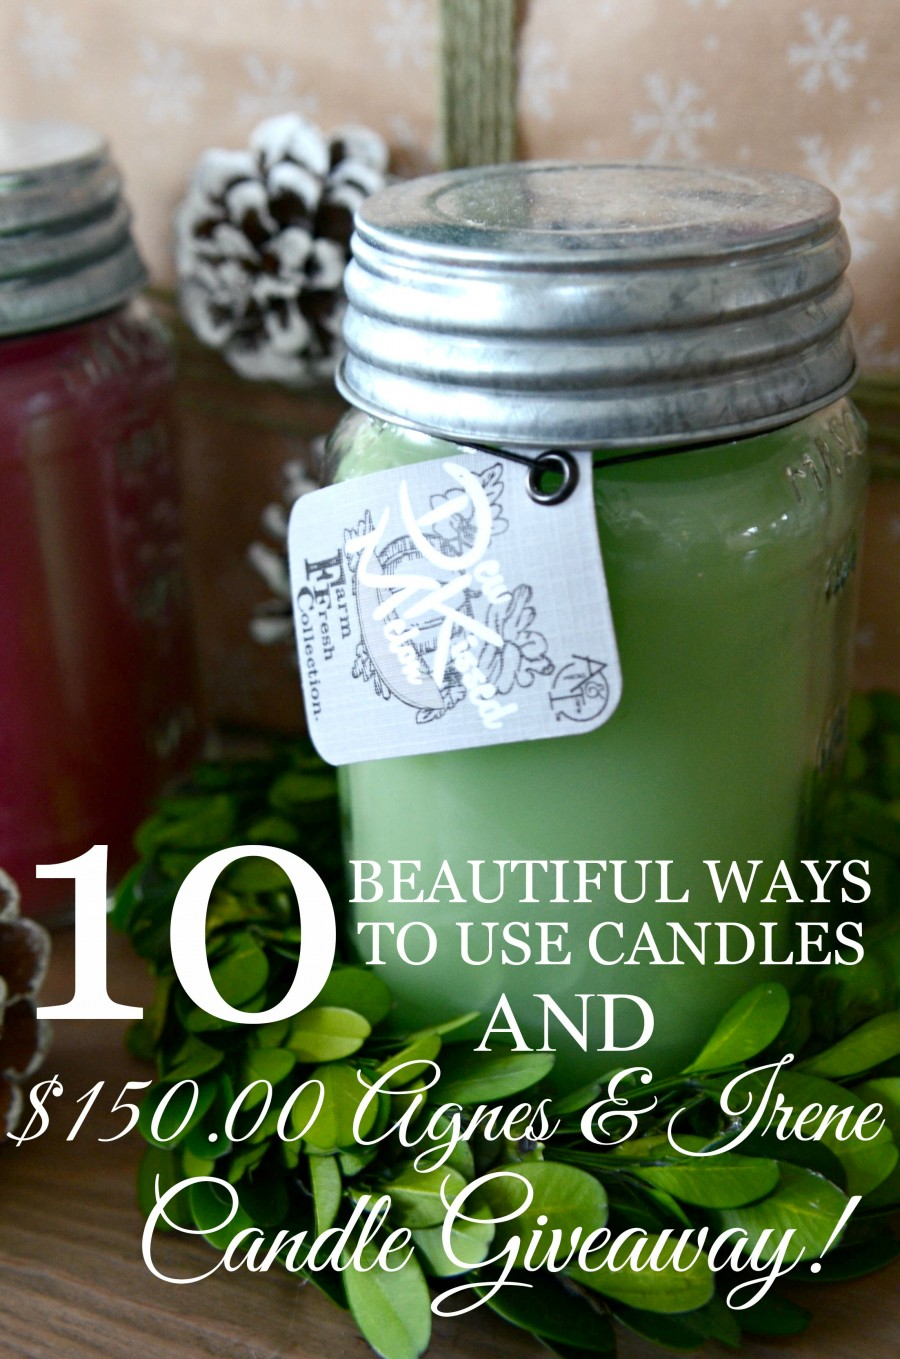 10 BEAUTIFUL CANDLE IDEAS AND A $150.00 GIVEAWAY